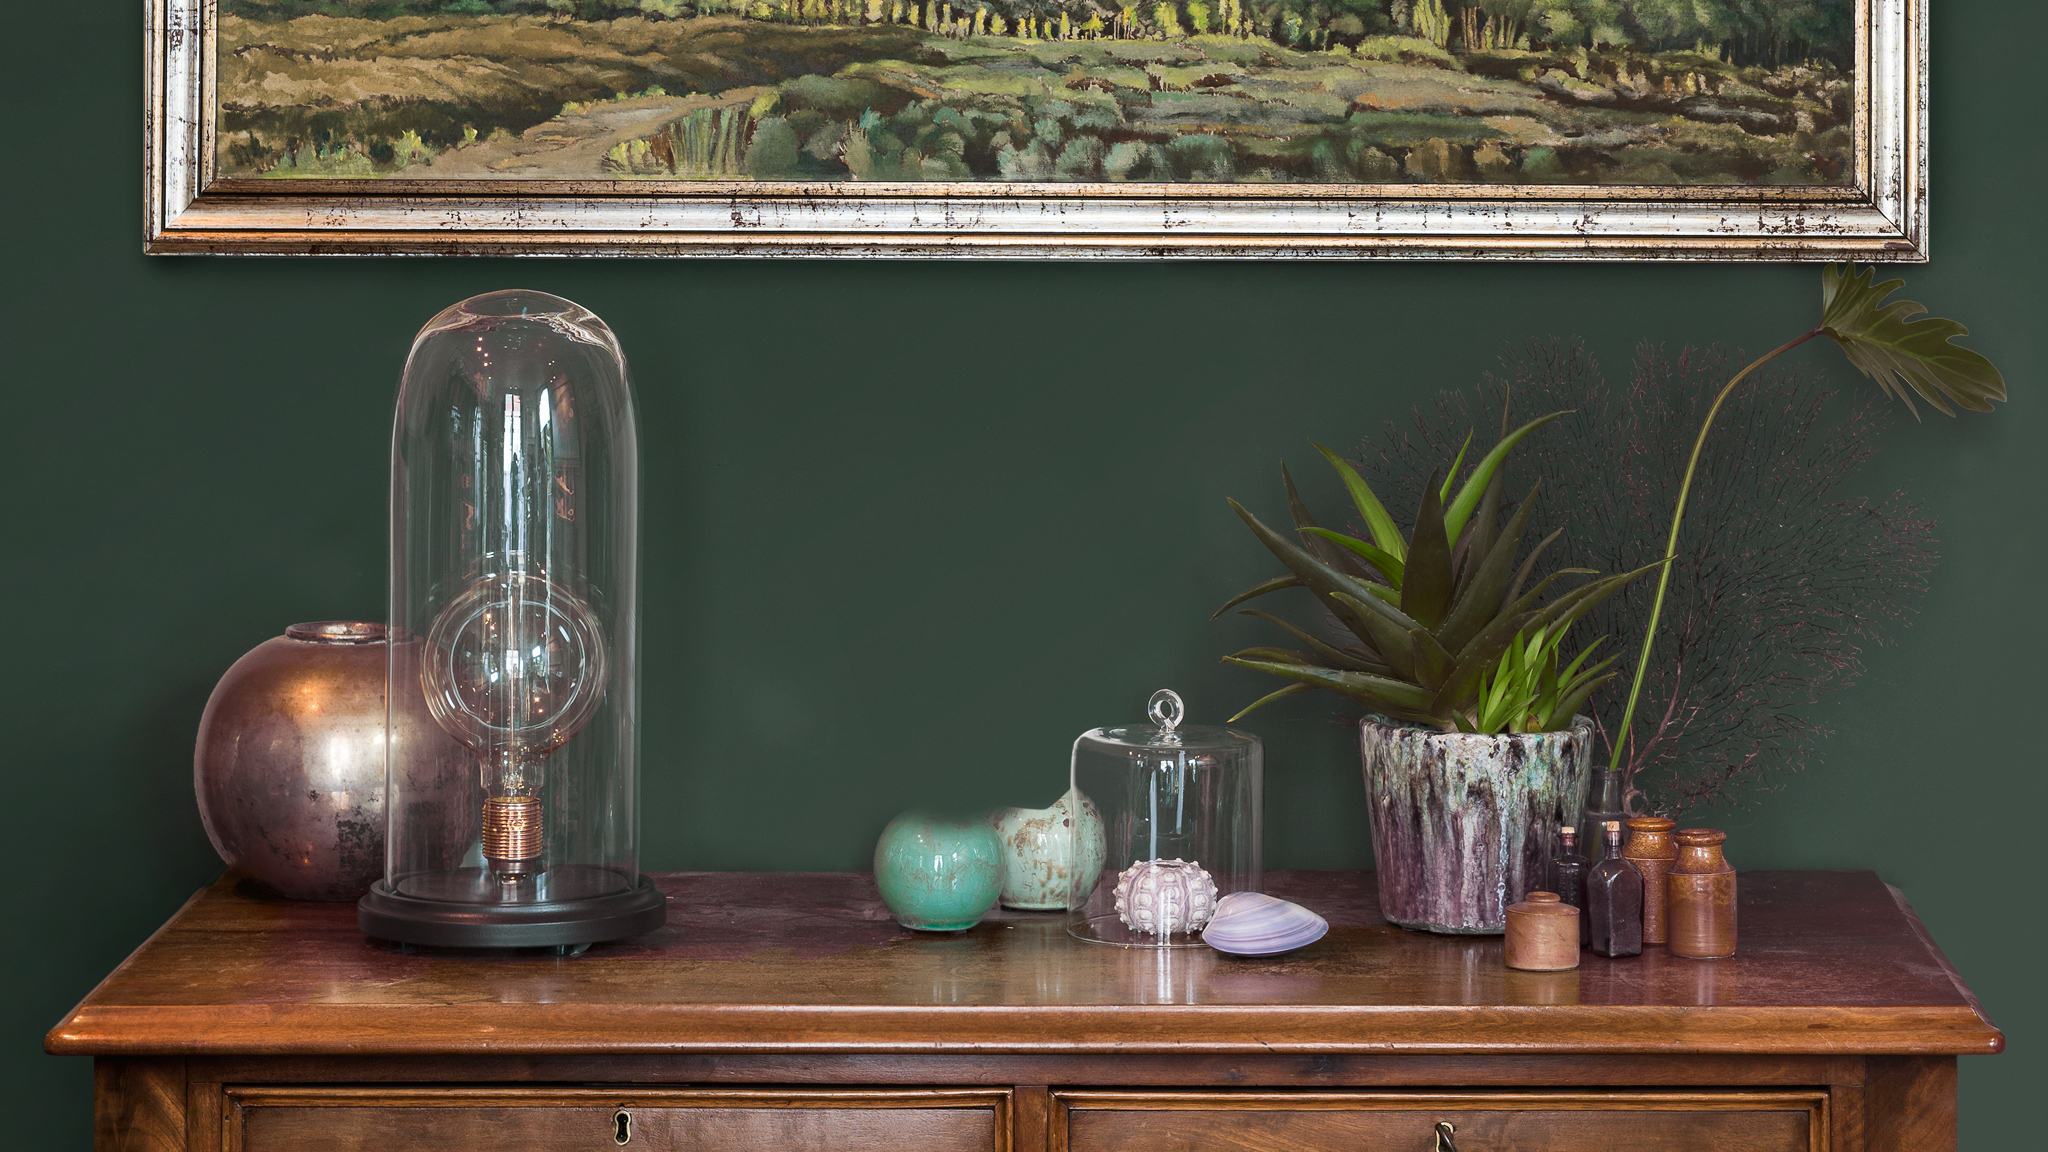 A deep, rich colour sets the tone for displaying antique objects.